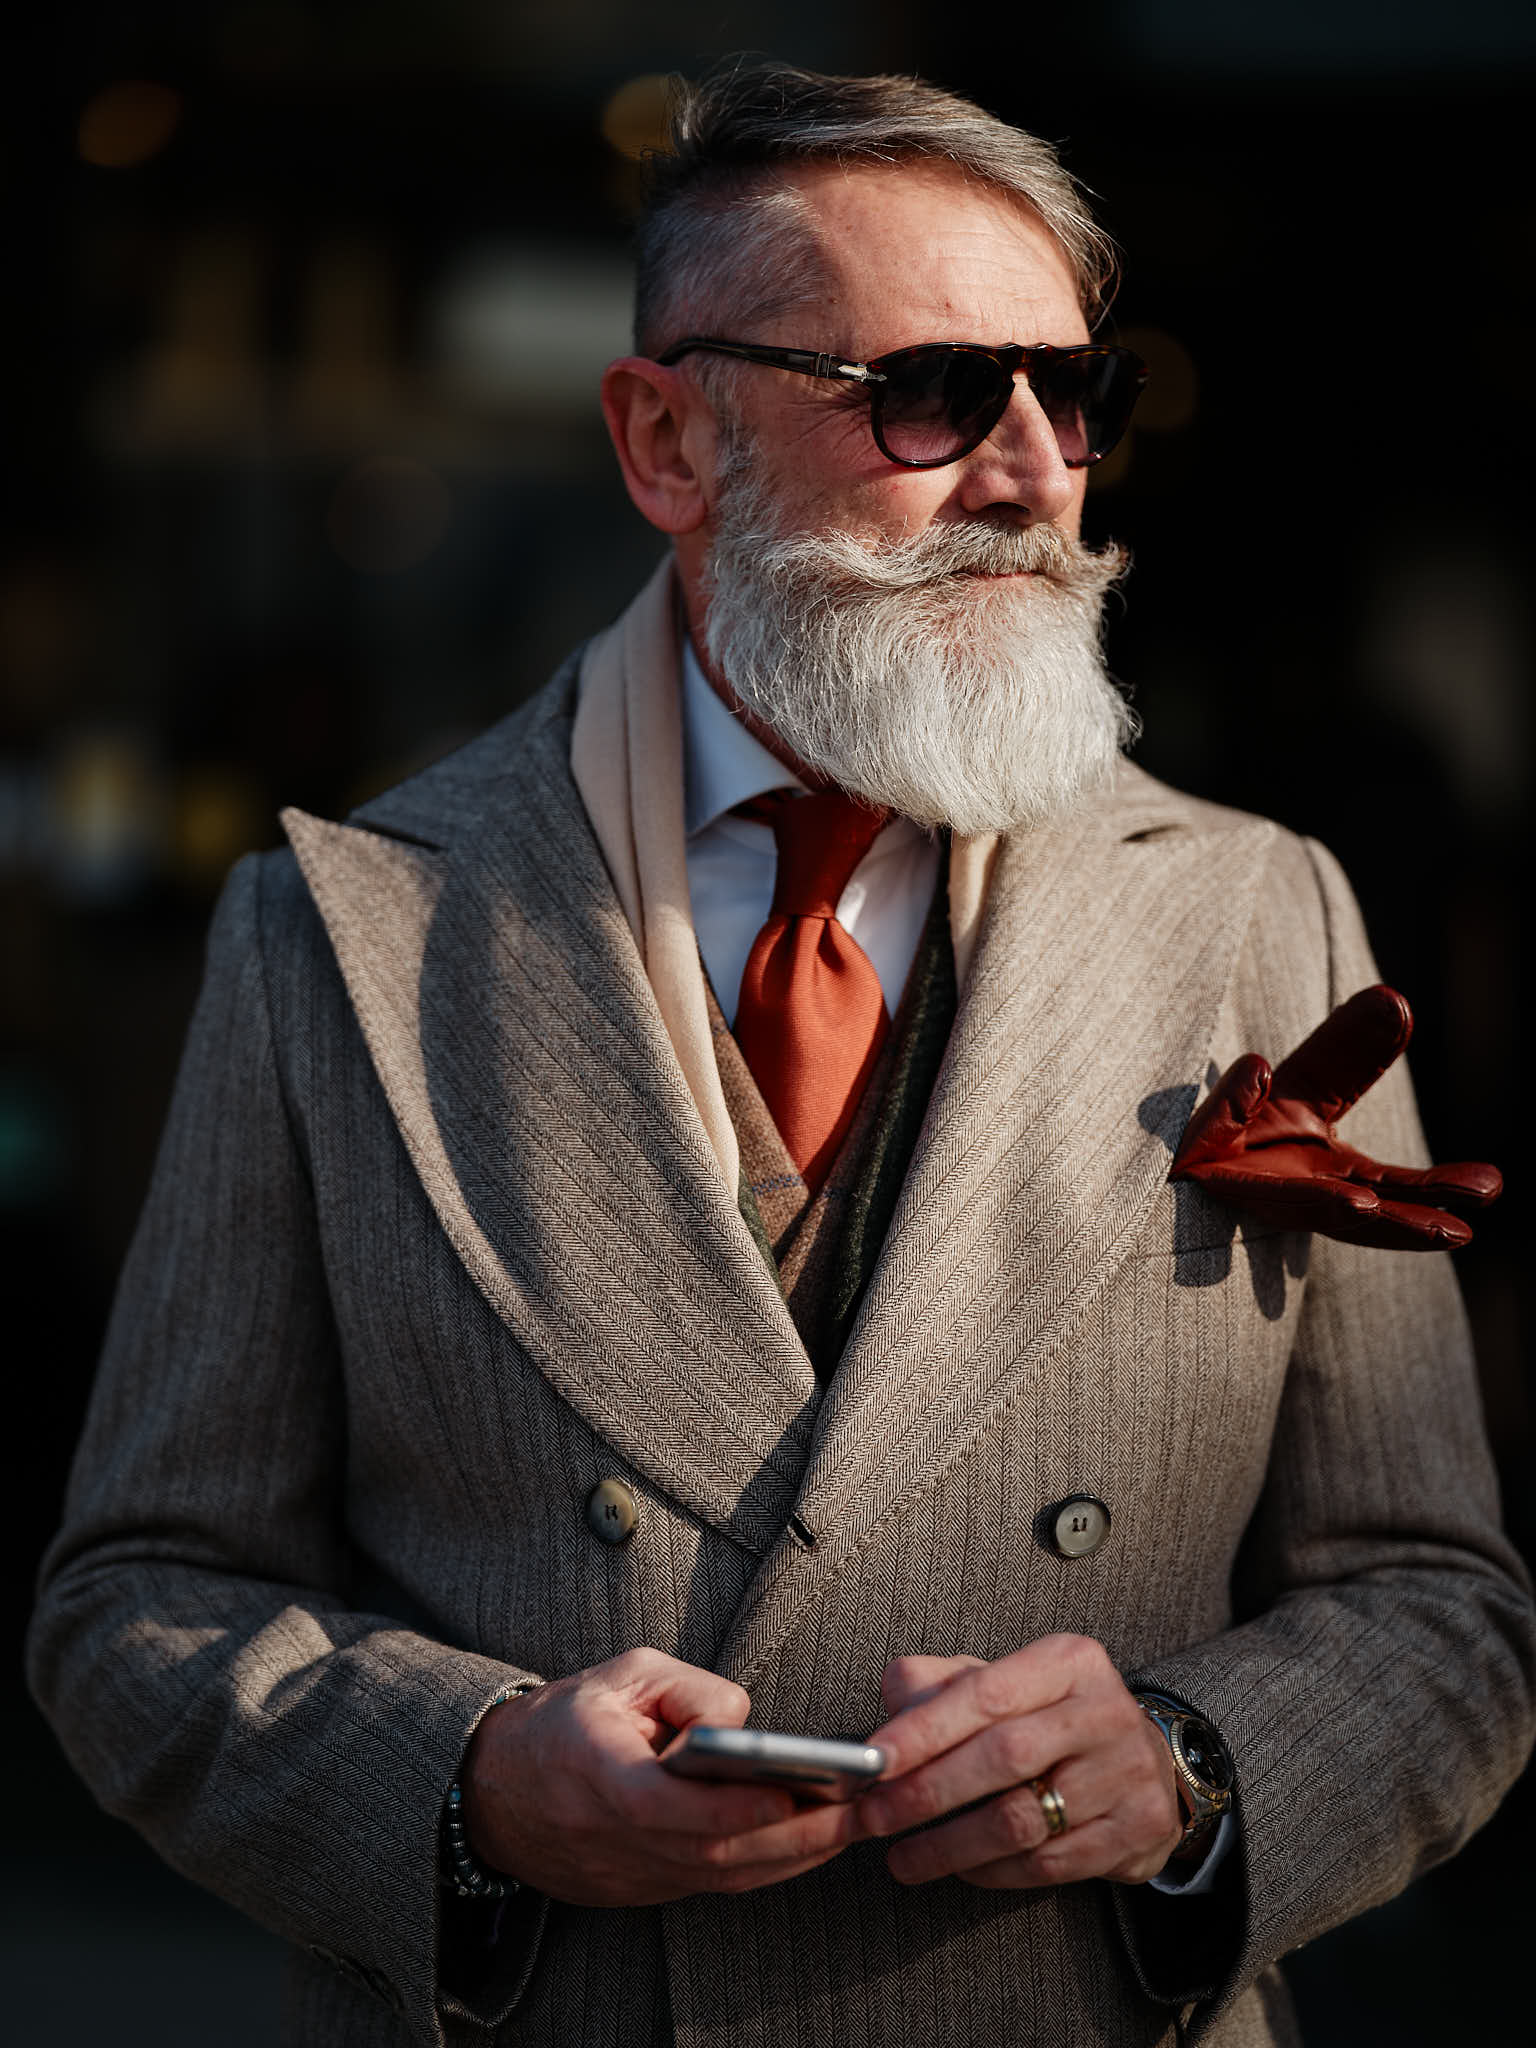 Photographer for Pitti Immagine Uomo in Florence